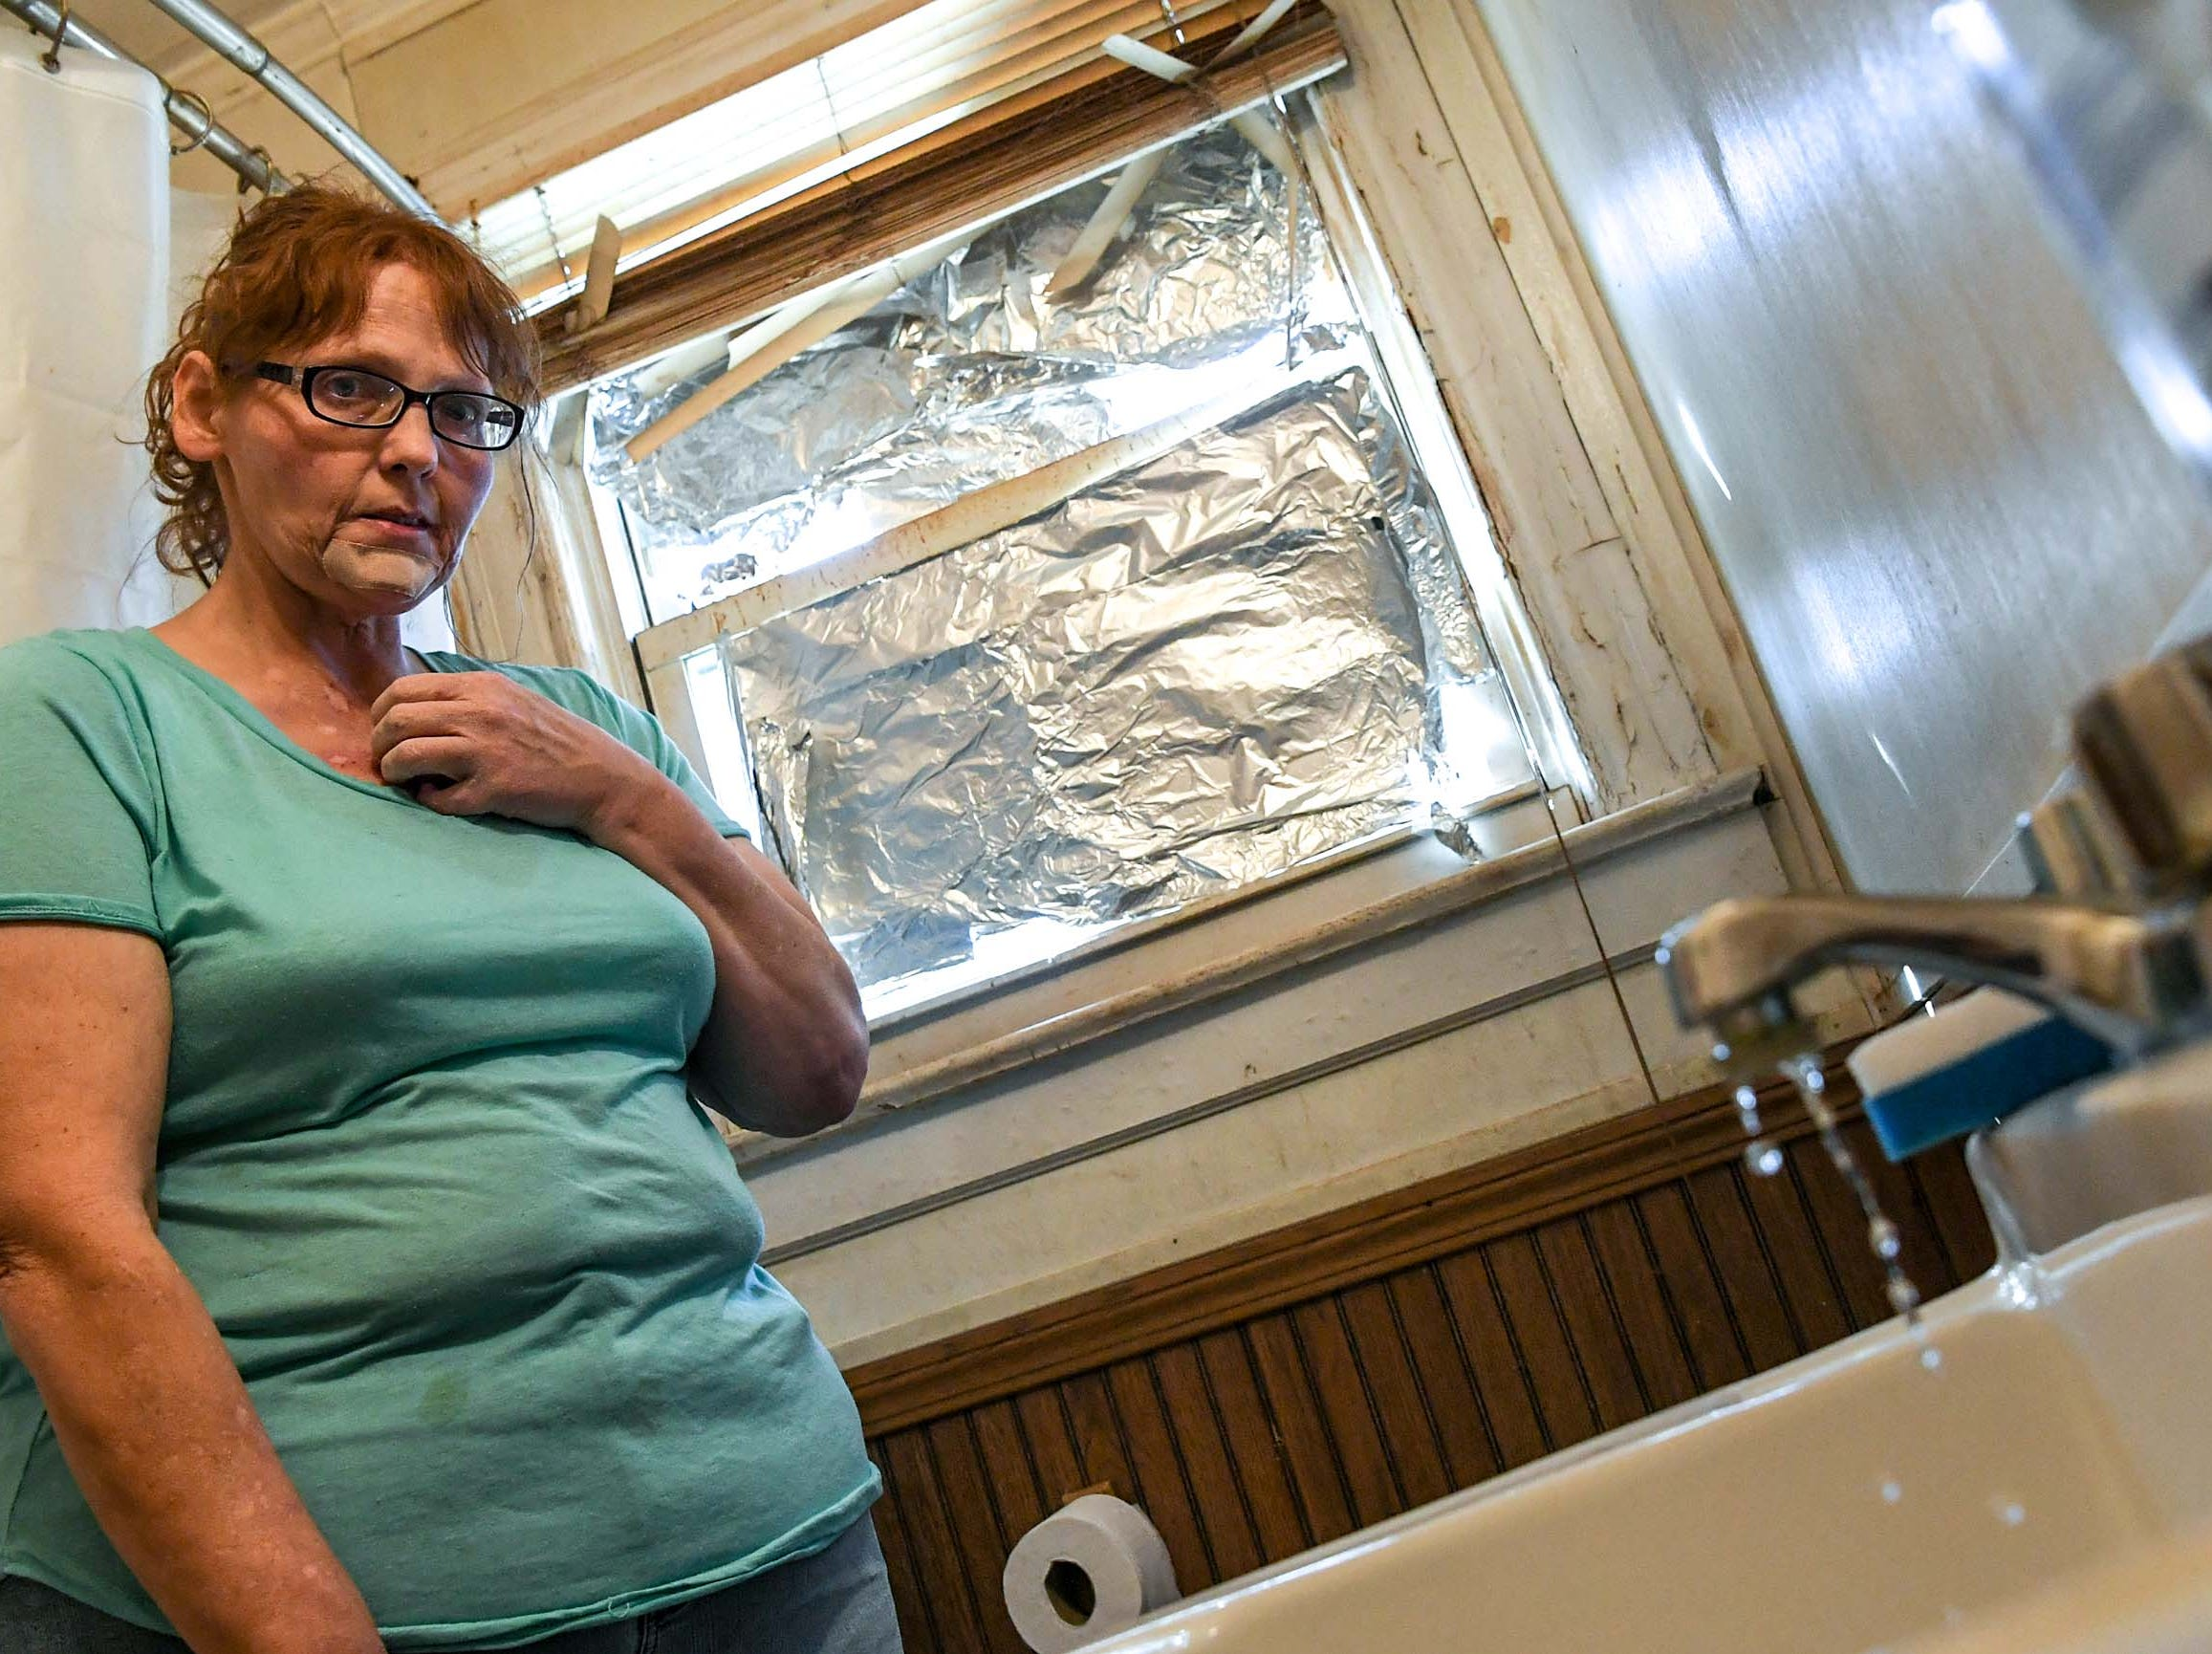 Kristy Drees of Anderson is unhappy with a leaky faucet and holes through the floor in her bathroom unprepared at the rental home in Homeland Park in Anderson in March. The problems with the water company and courtroom battles with her landlord while being unemployed she says is stressful.